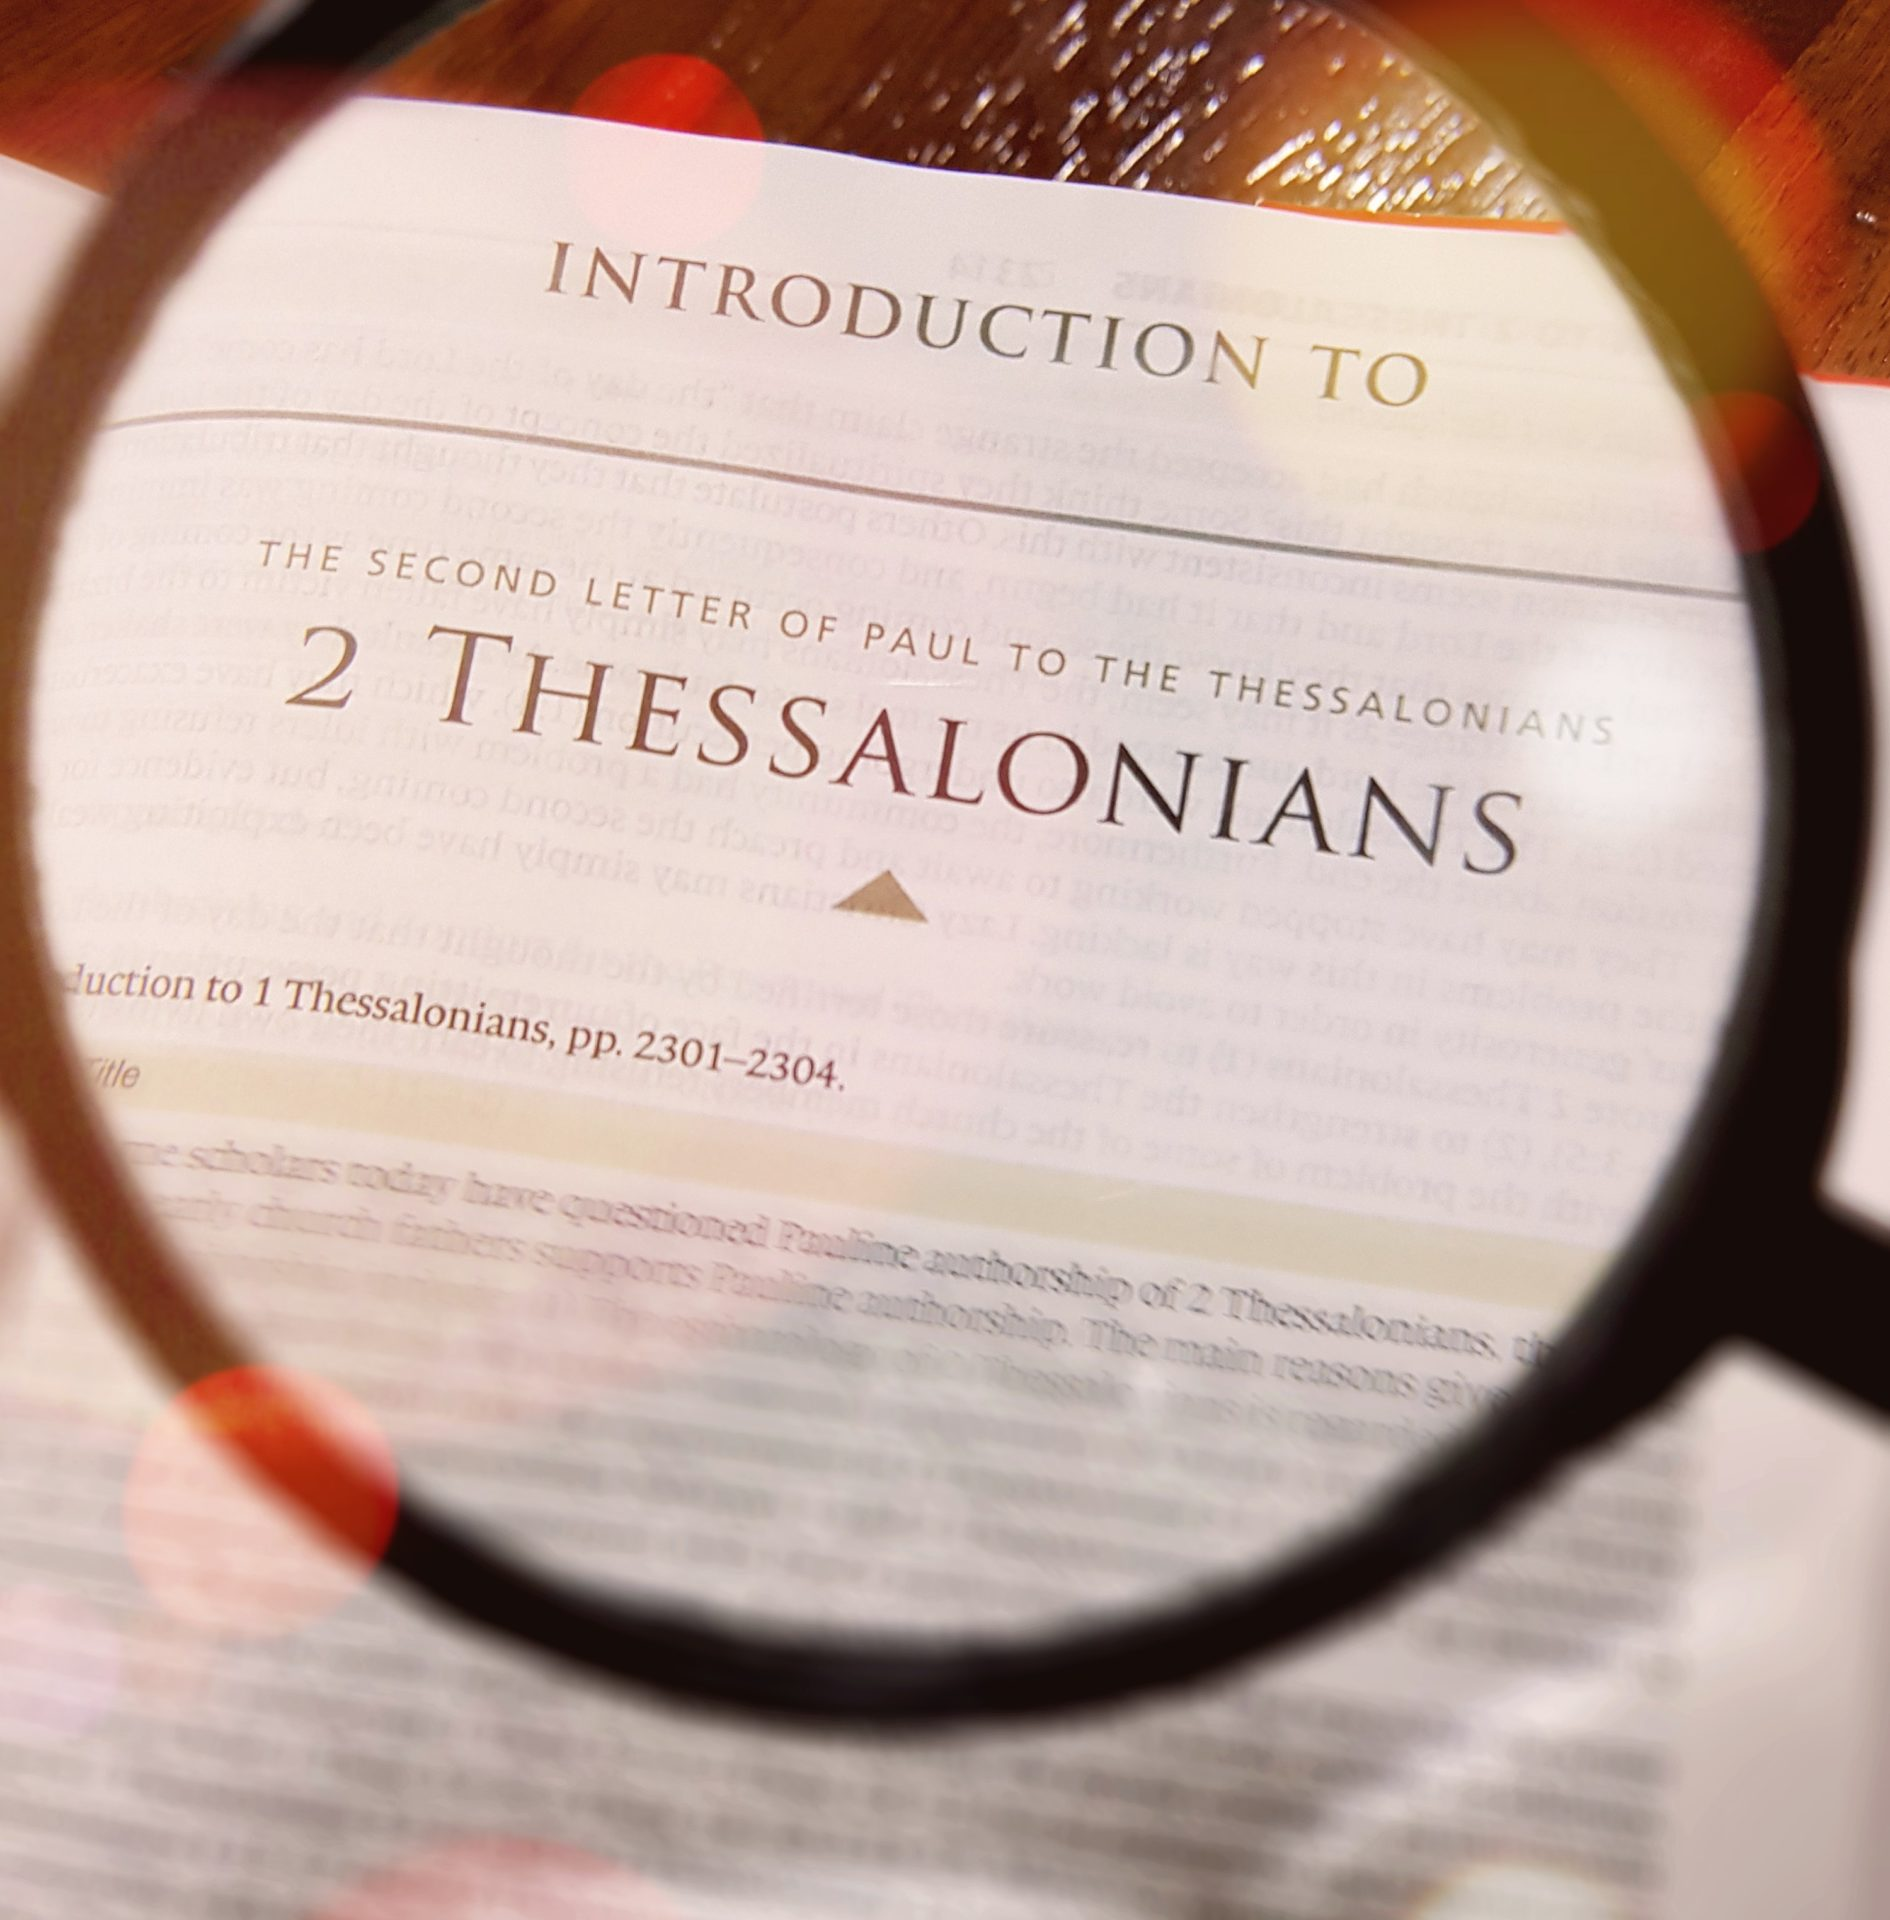 Introduction to 2 Thessalonians